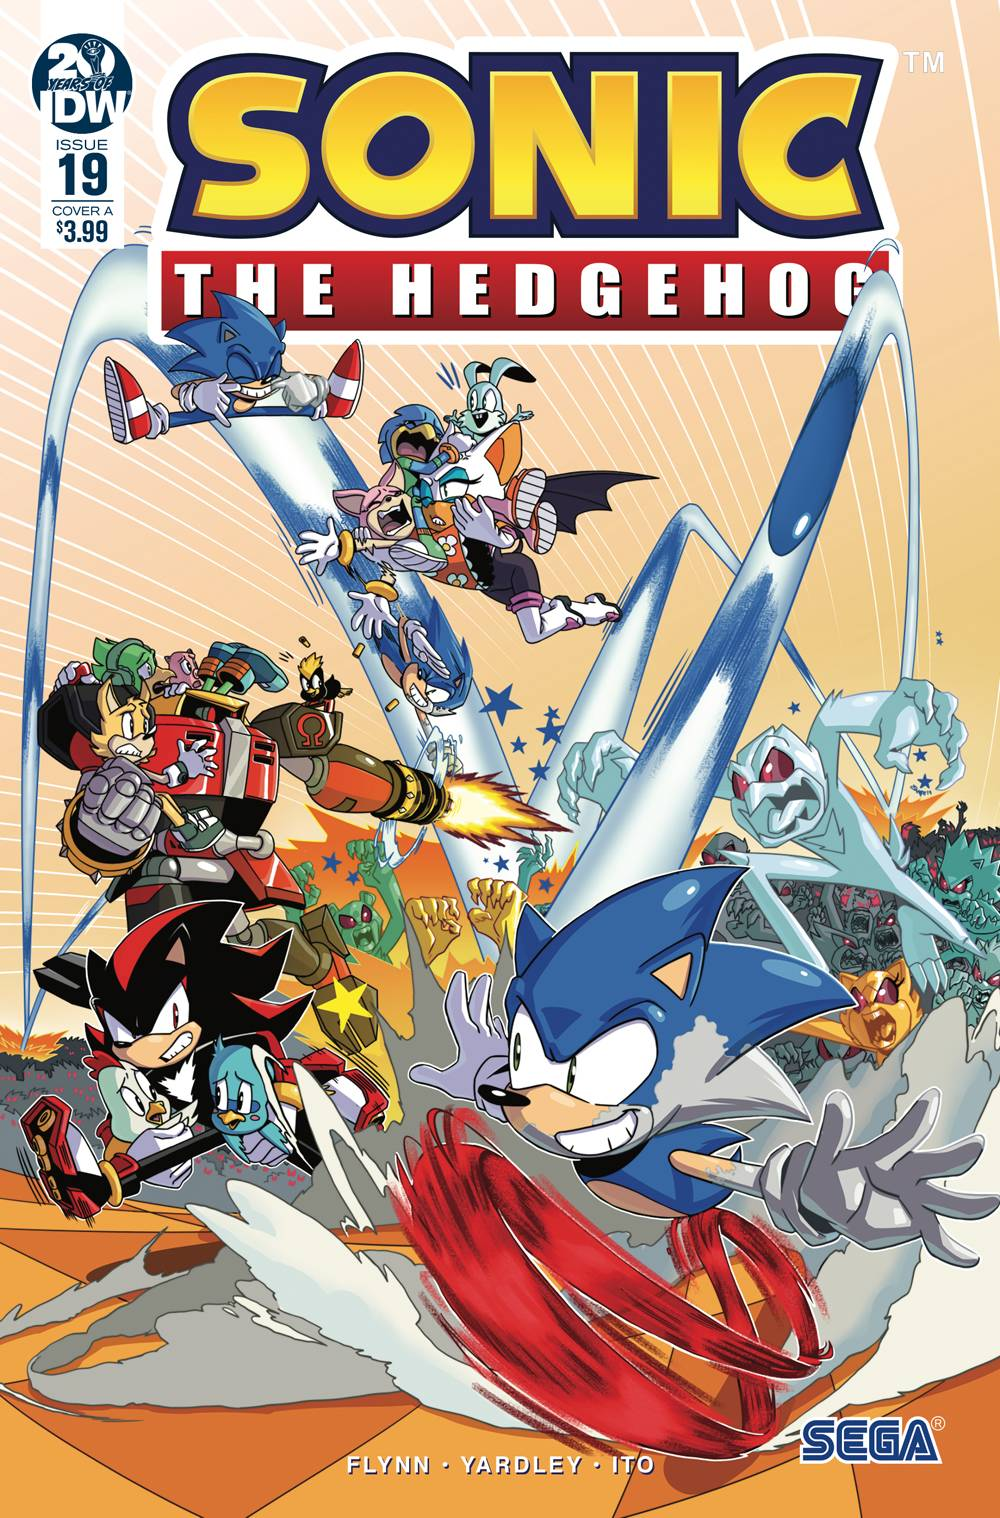 May190590 Sonic The Hedgehog 19 Cvr A Jampole Free Comic Book Day